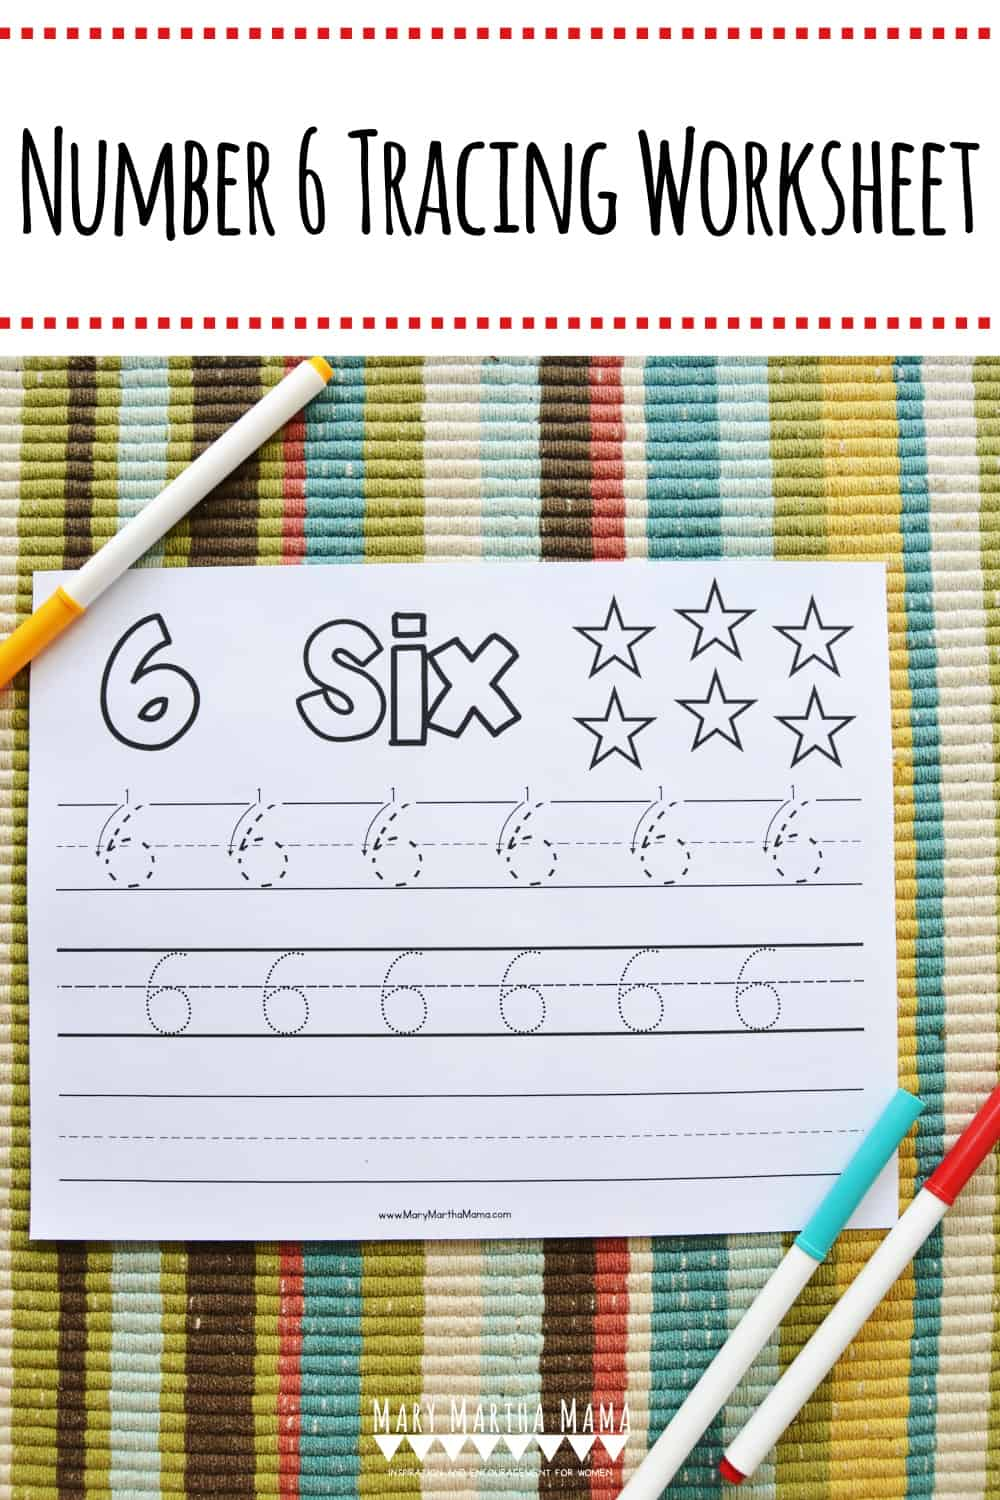 Use this free printable Number 6 Tracing Worksheet to help your kiddo learn how to write number 6.  Features tracing with and without arrows to guide.